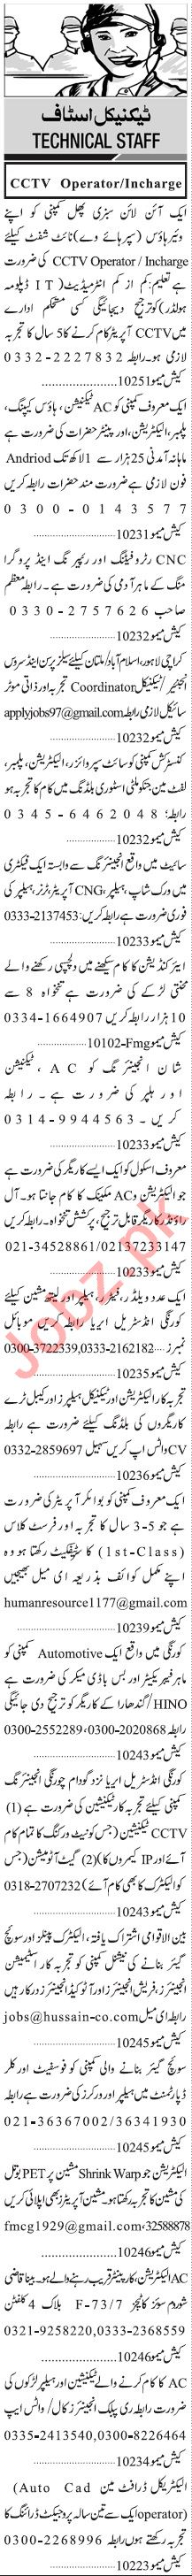 Jang Sunday Classified Ads 18 April 2021 for Technical Staff